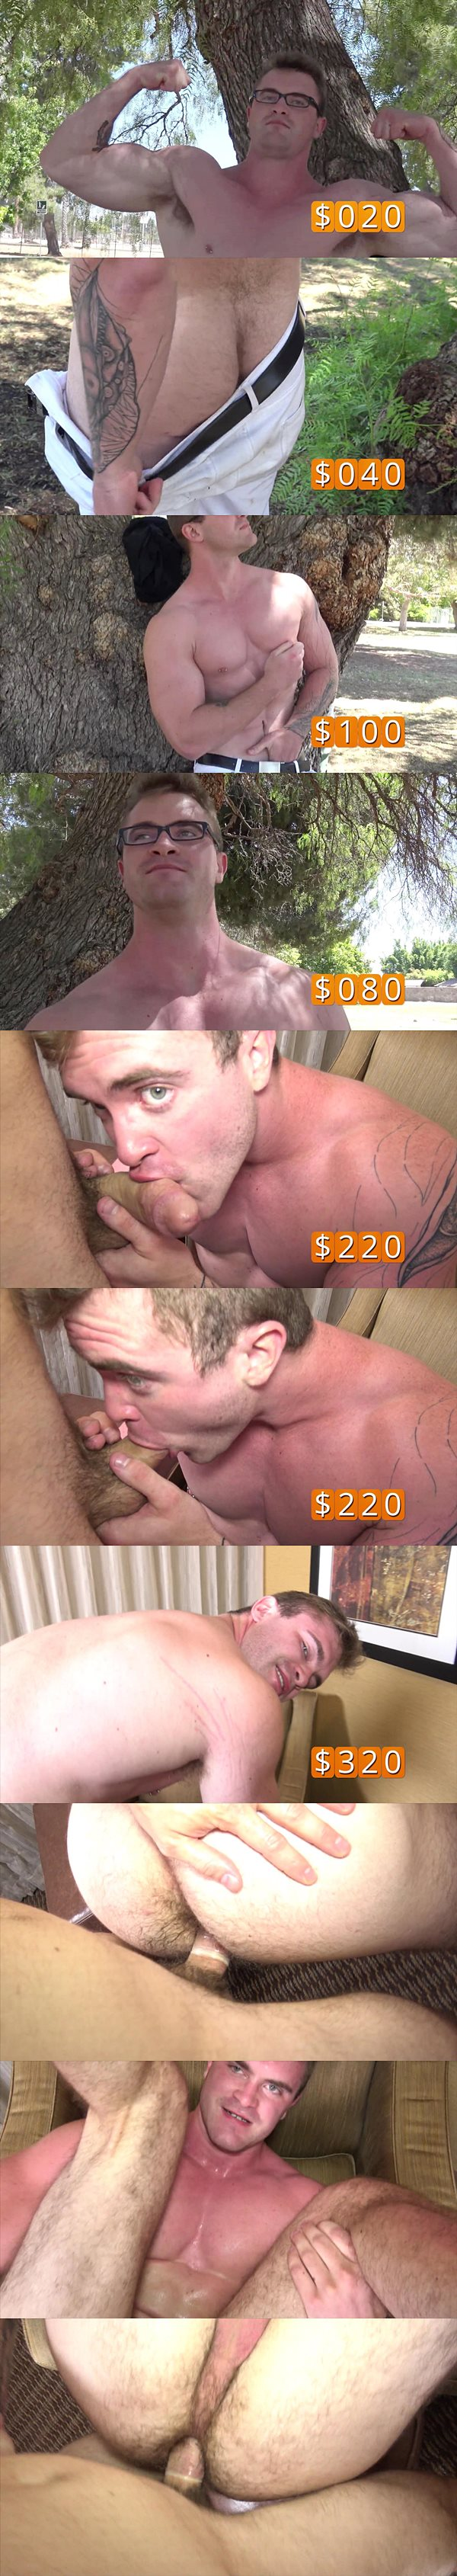 A sneak peek of new recruit Scott Ambrose's bottoming debut at Realitydudes